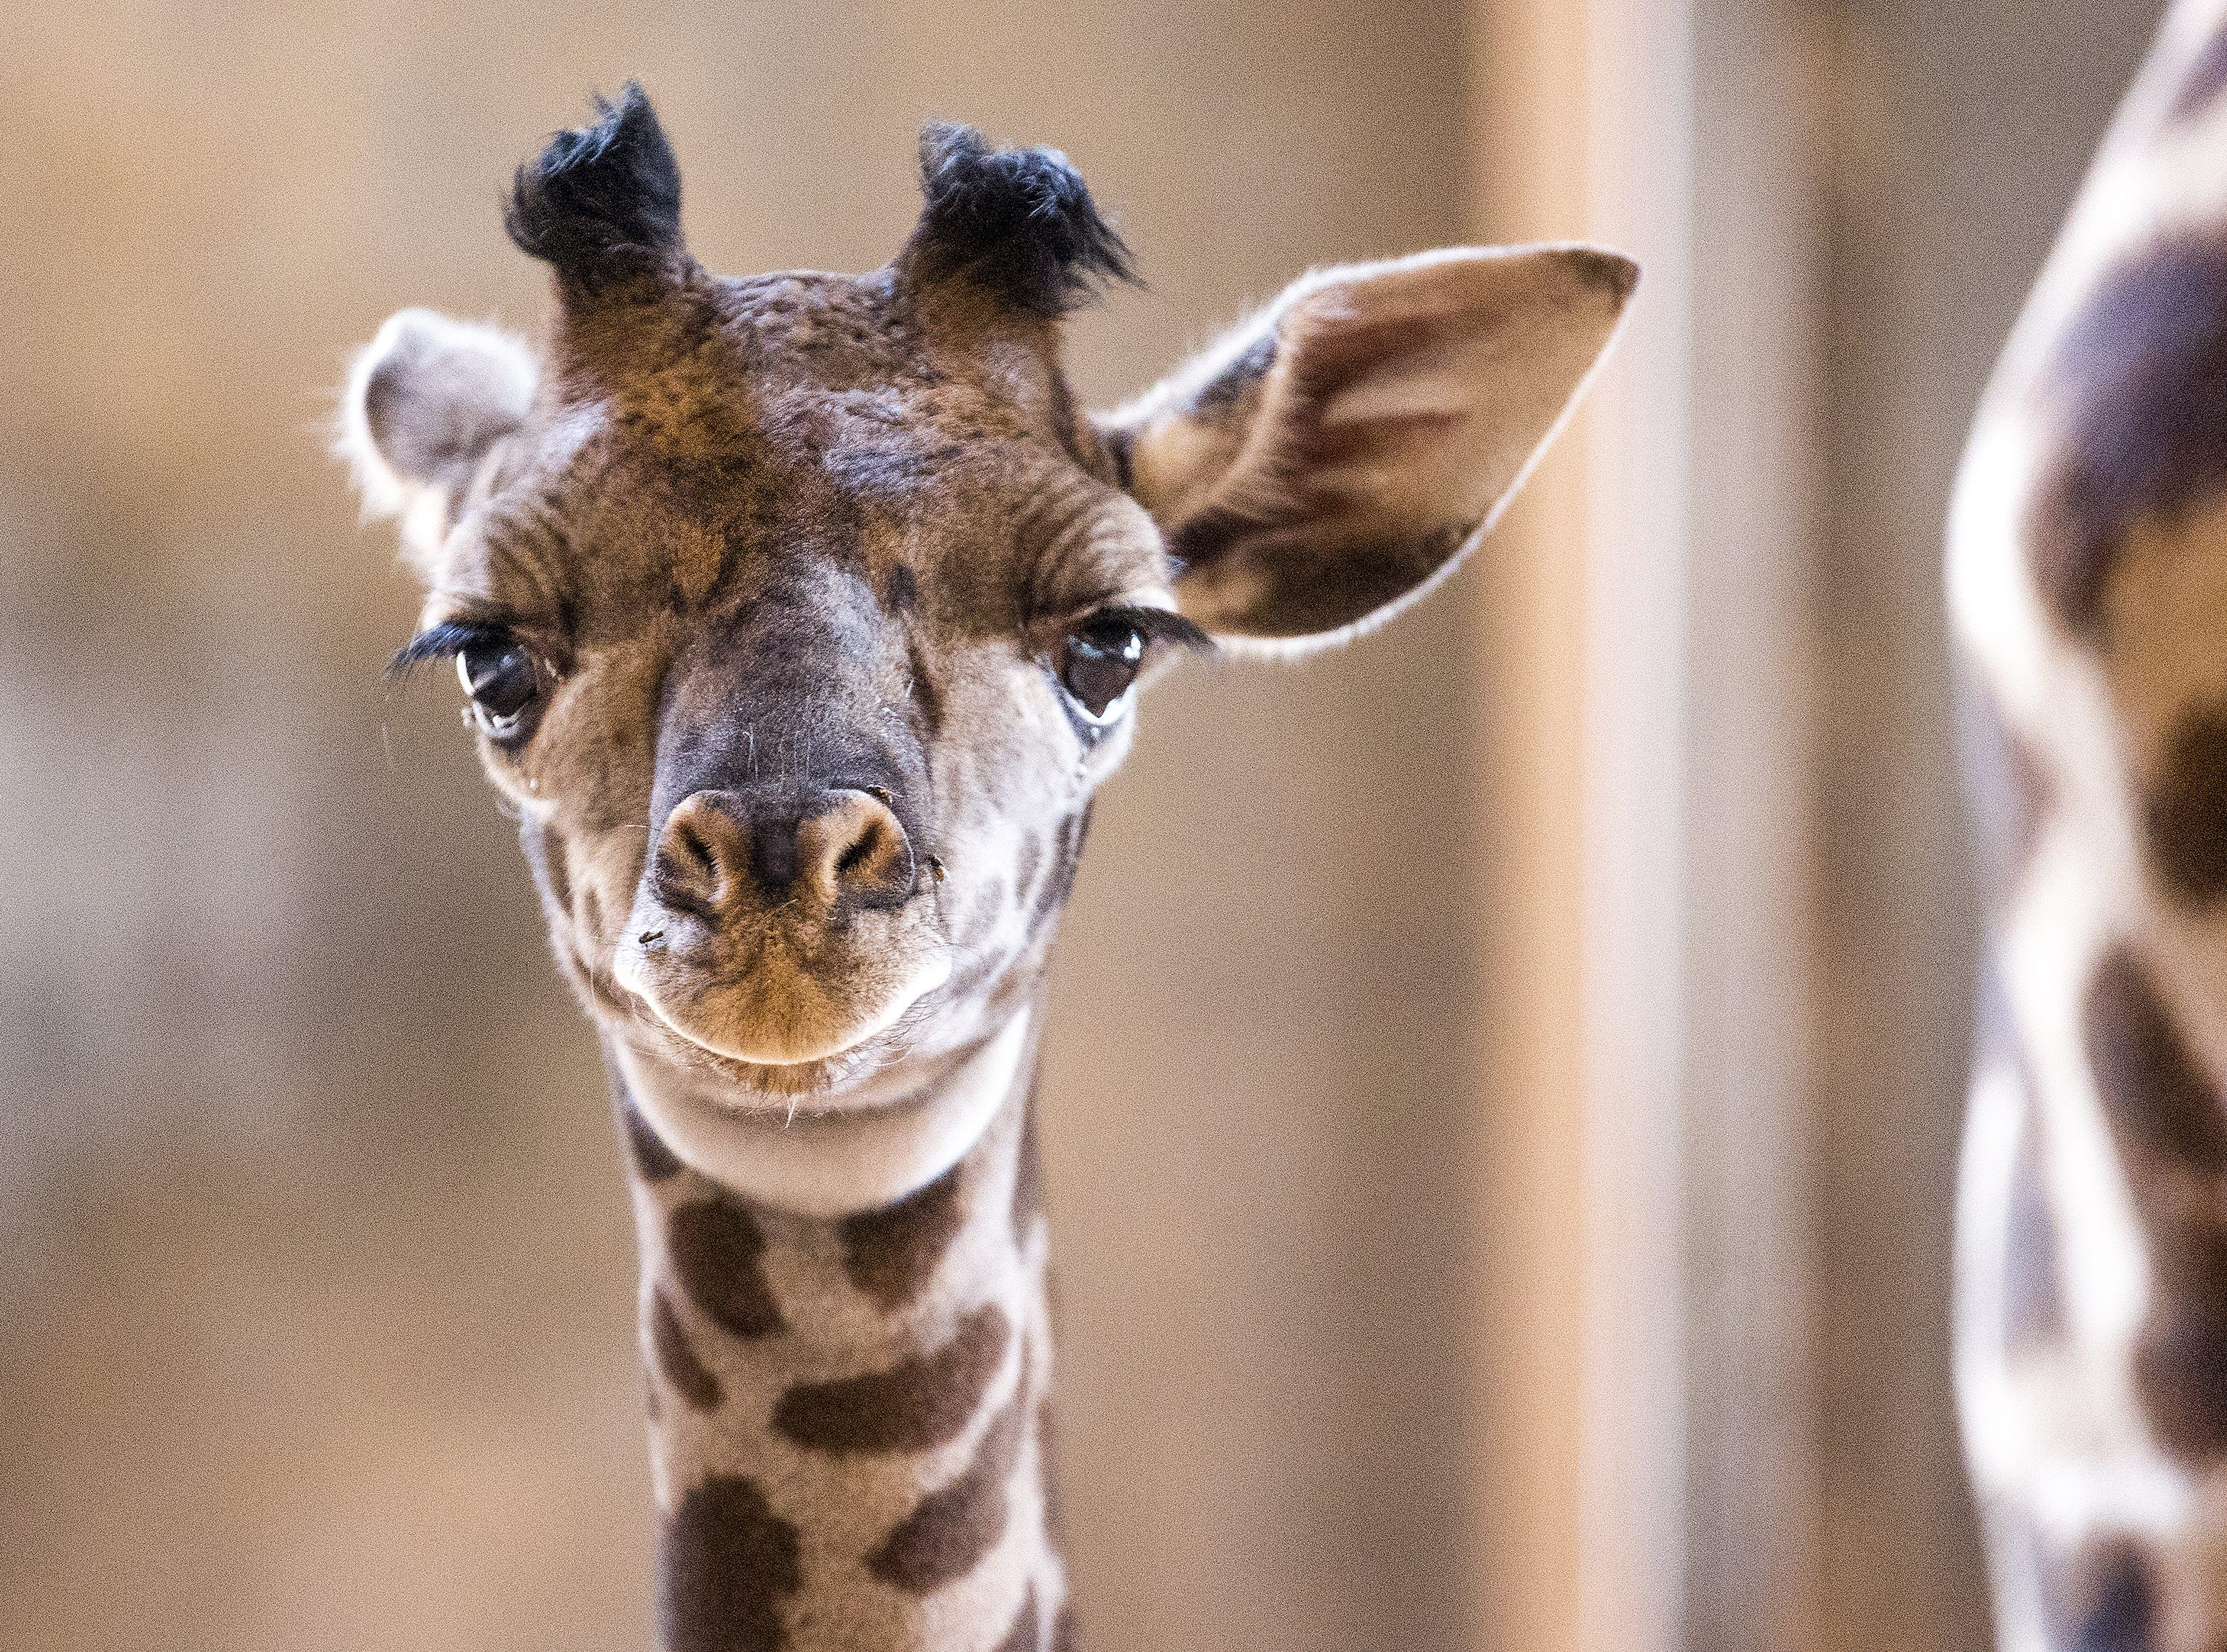 VISIT THE PHOENIX ZOO: Aside from the typical zoo activities, the Phoenix Zoo offers extra opportunities for visitors to get up close with animals like giraffes and stingrays.